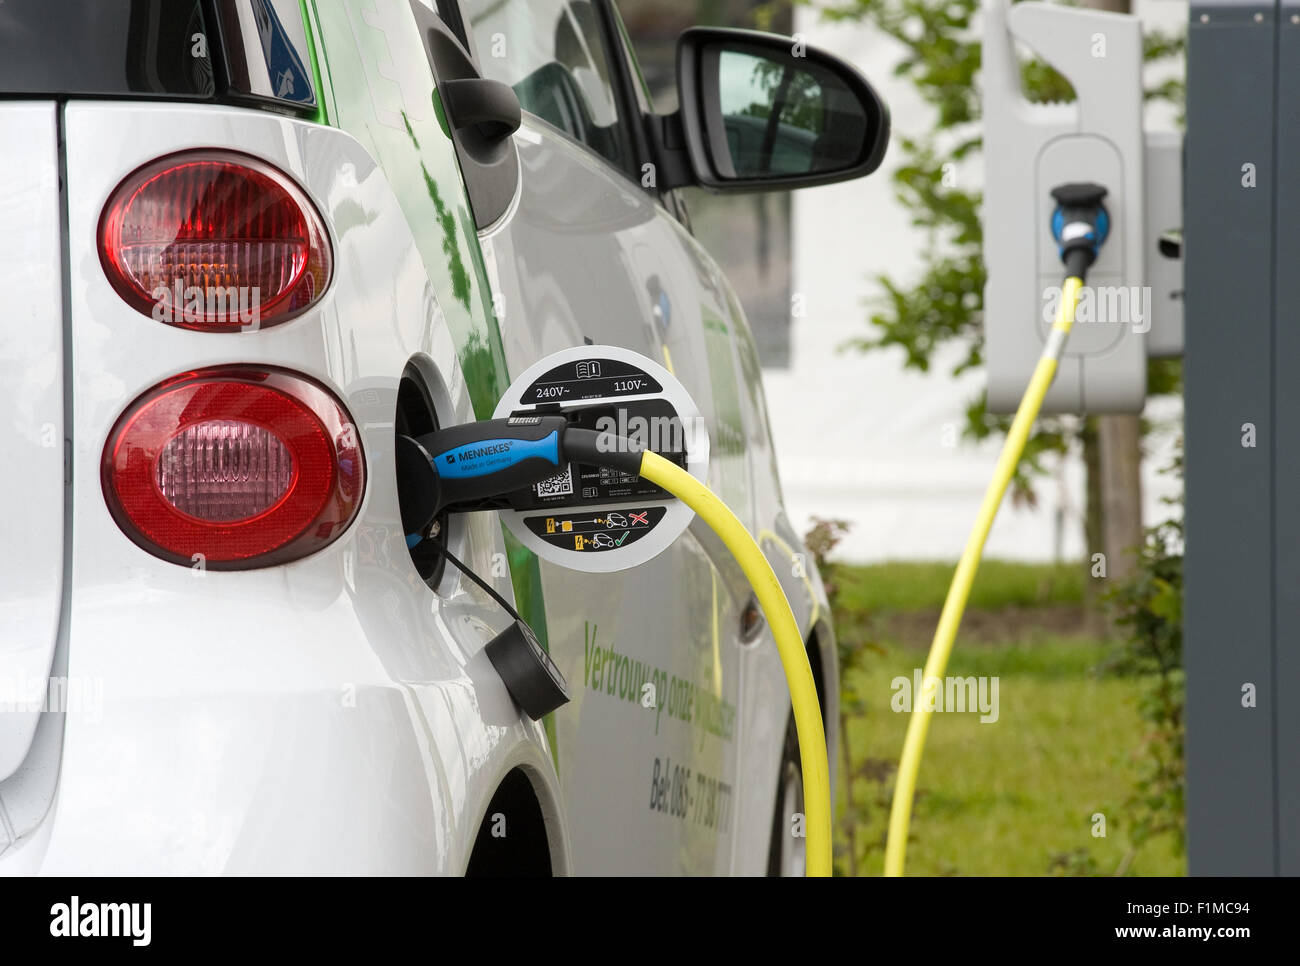 An electric car is parked at a parking spot and is being recharged at a power station - Stock Image